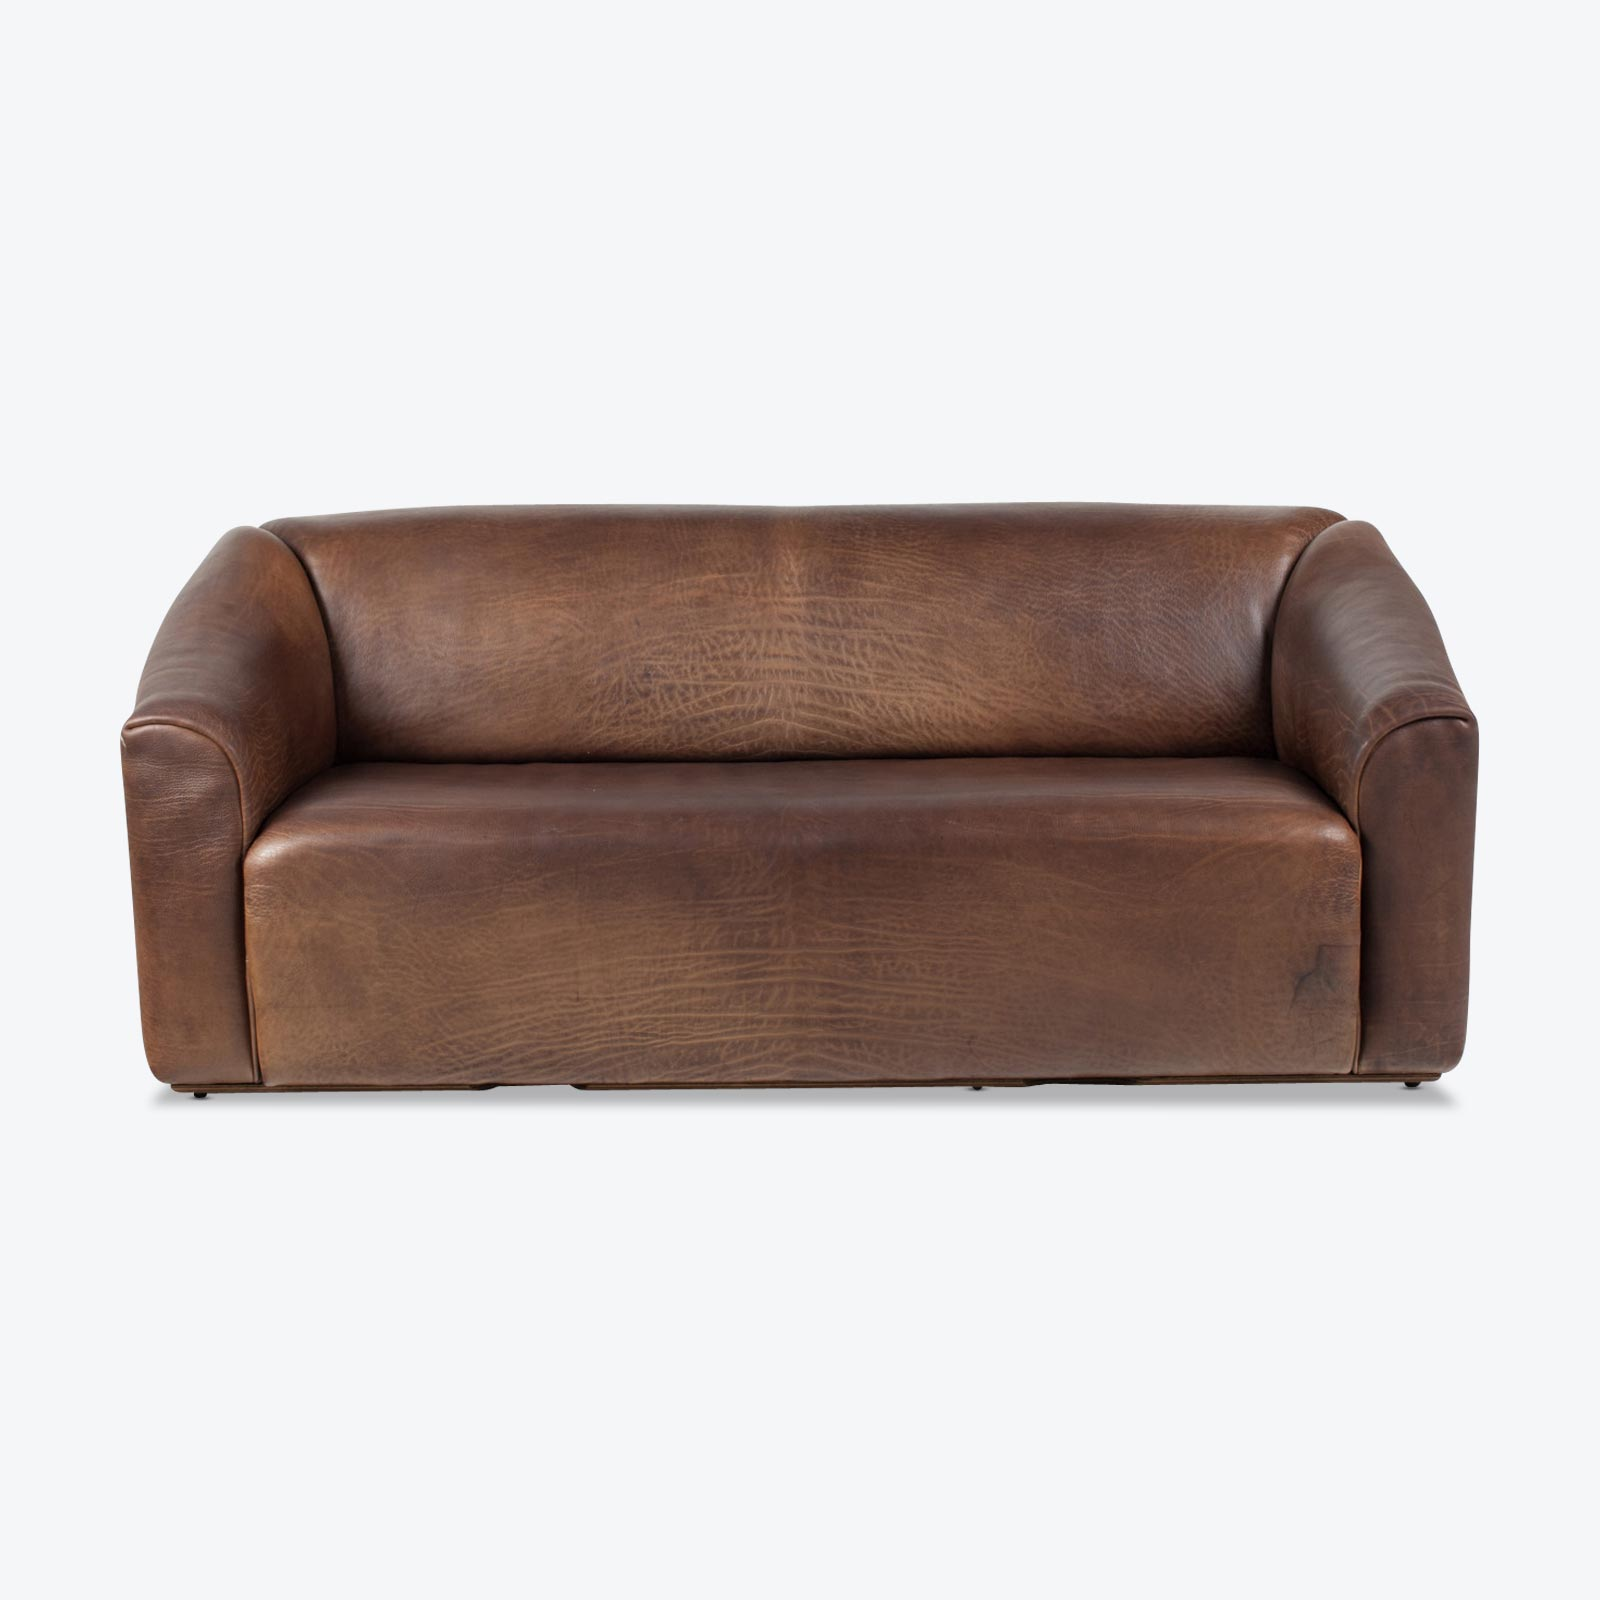 de sede sleeper sofa air mattress furniture model ds47 3 seat by in thick brown leather 1970s switzerland 01